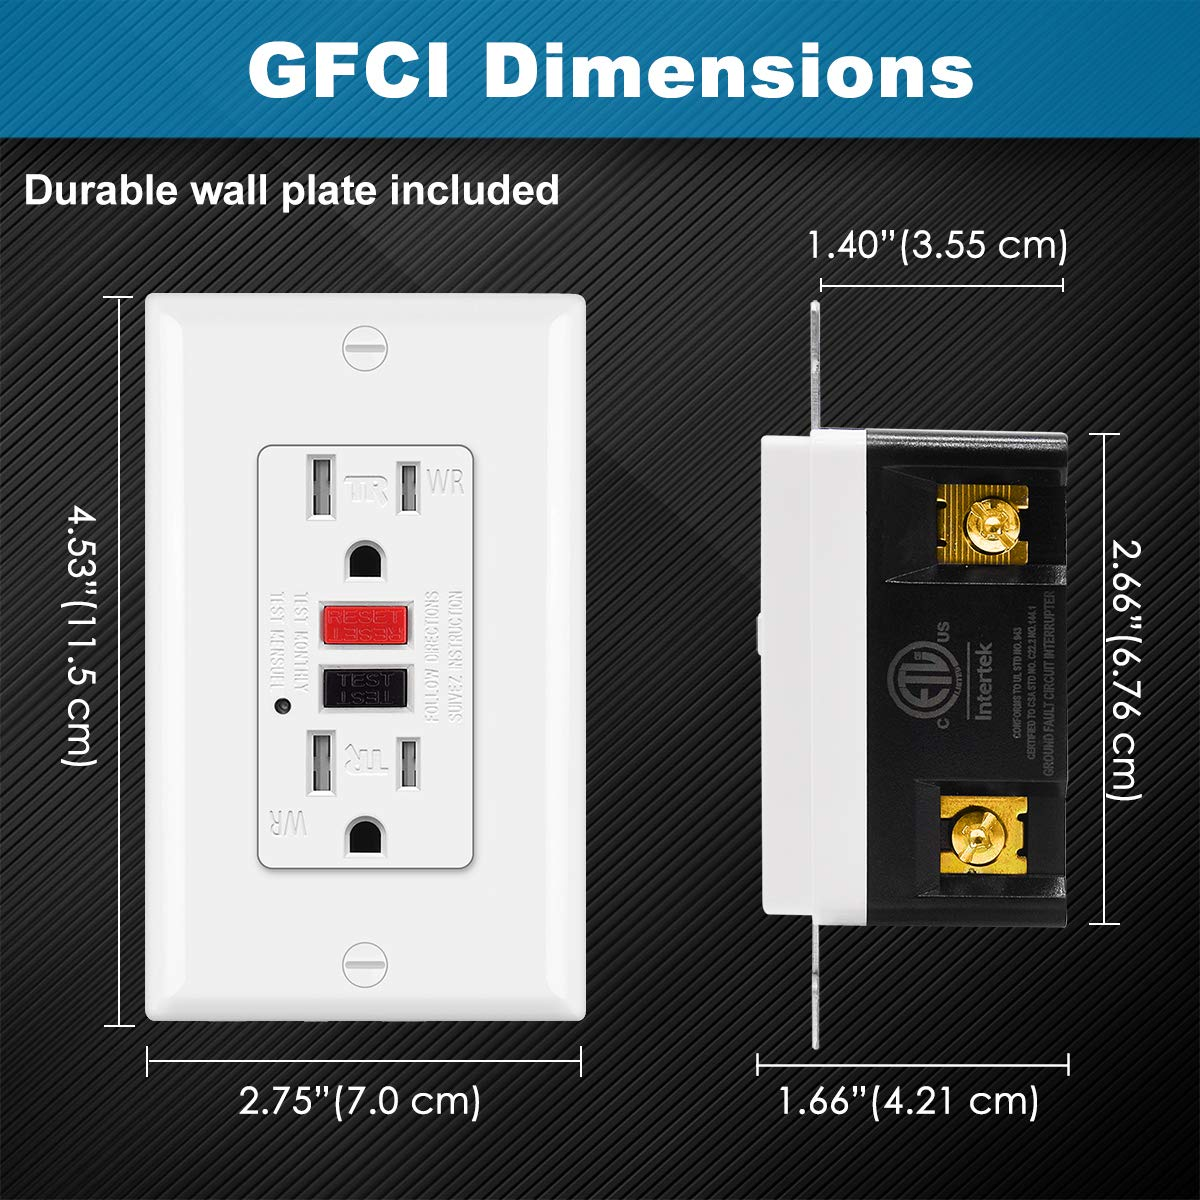 (10 Pack) UNIELE GFCI Receptacle Outlet, 15A/125V, Weather-Resistant (WR) & Tamper-Resistant(TR) Ground Fault Circuit Interrupter Outlets, Wallplate Included, White: Industrial & Scientific